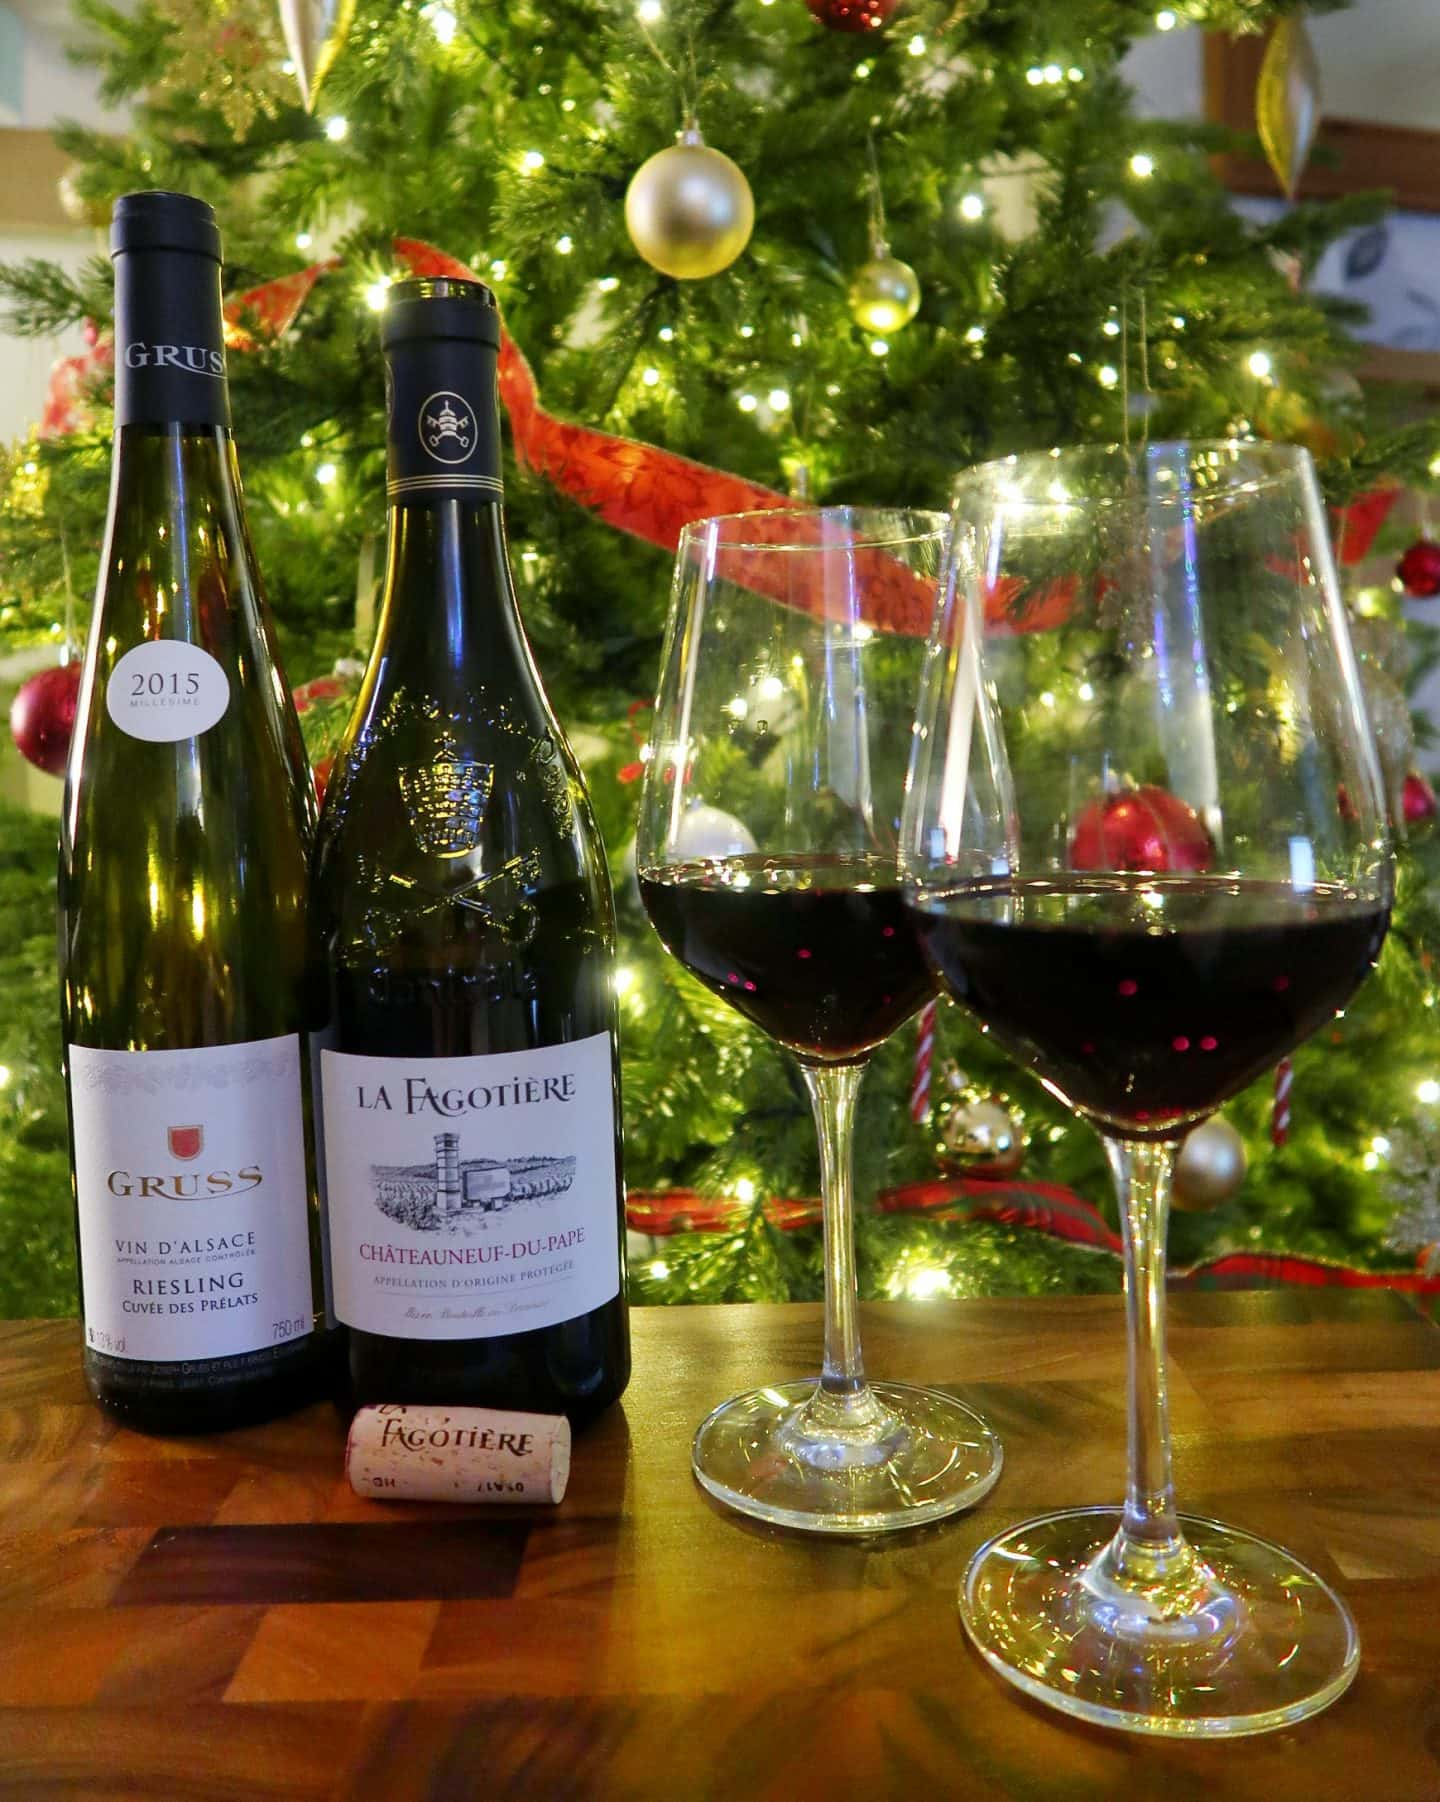 A selction of wine and glasses filled with red wine in front of a Christmas tree